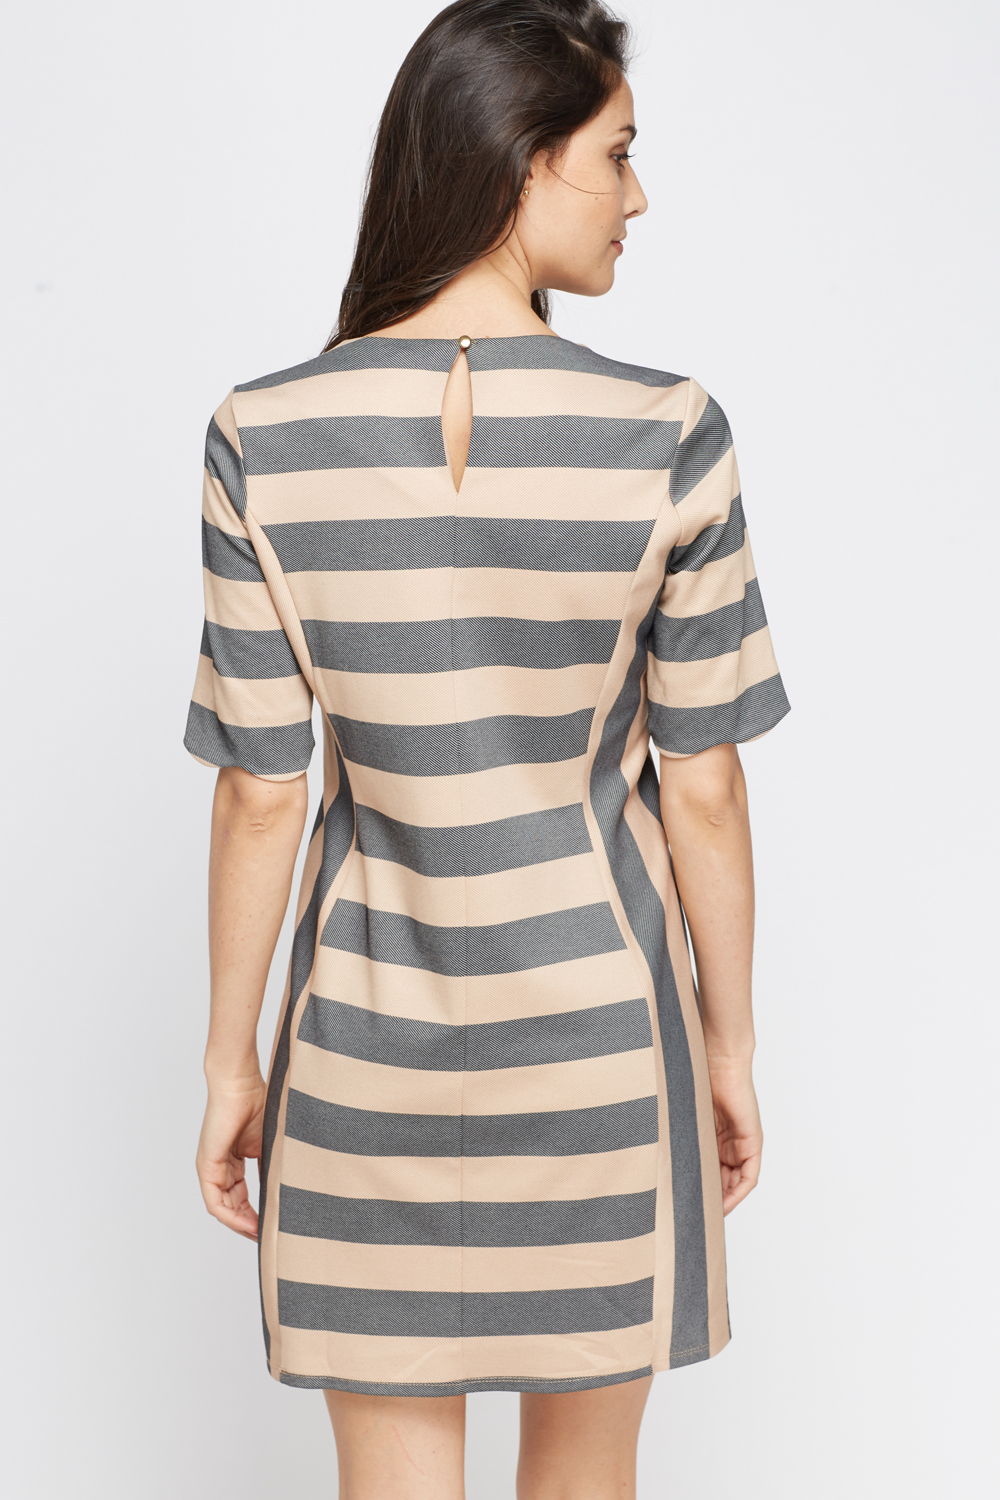 Details about DKNY SLEEVELESS SCOOPNECK DRESS, Stripe Black/beige, Size S, MSRP $ Be the first to write a review. DKNY SLEEVELESS SCOOPNECK DRESS, Stripe Black/beige.